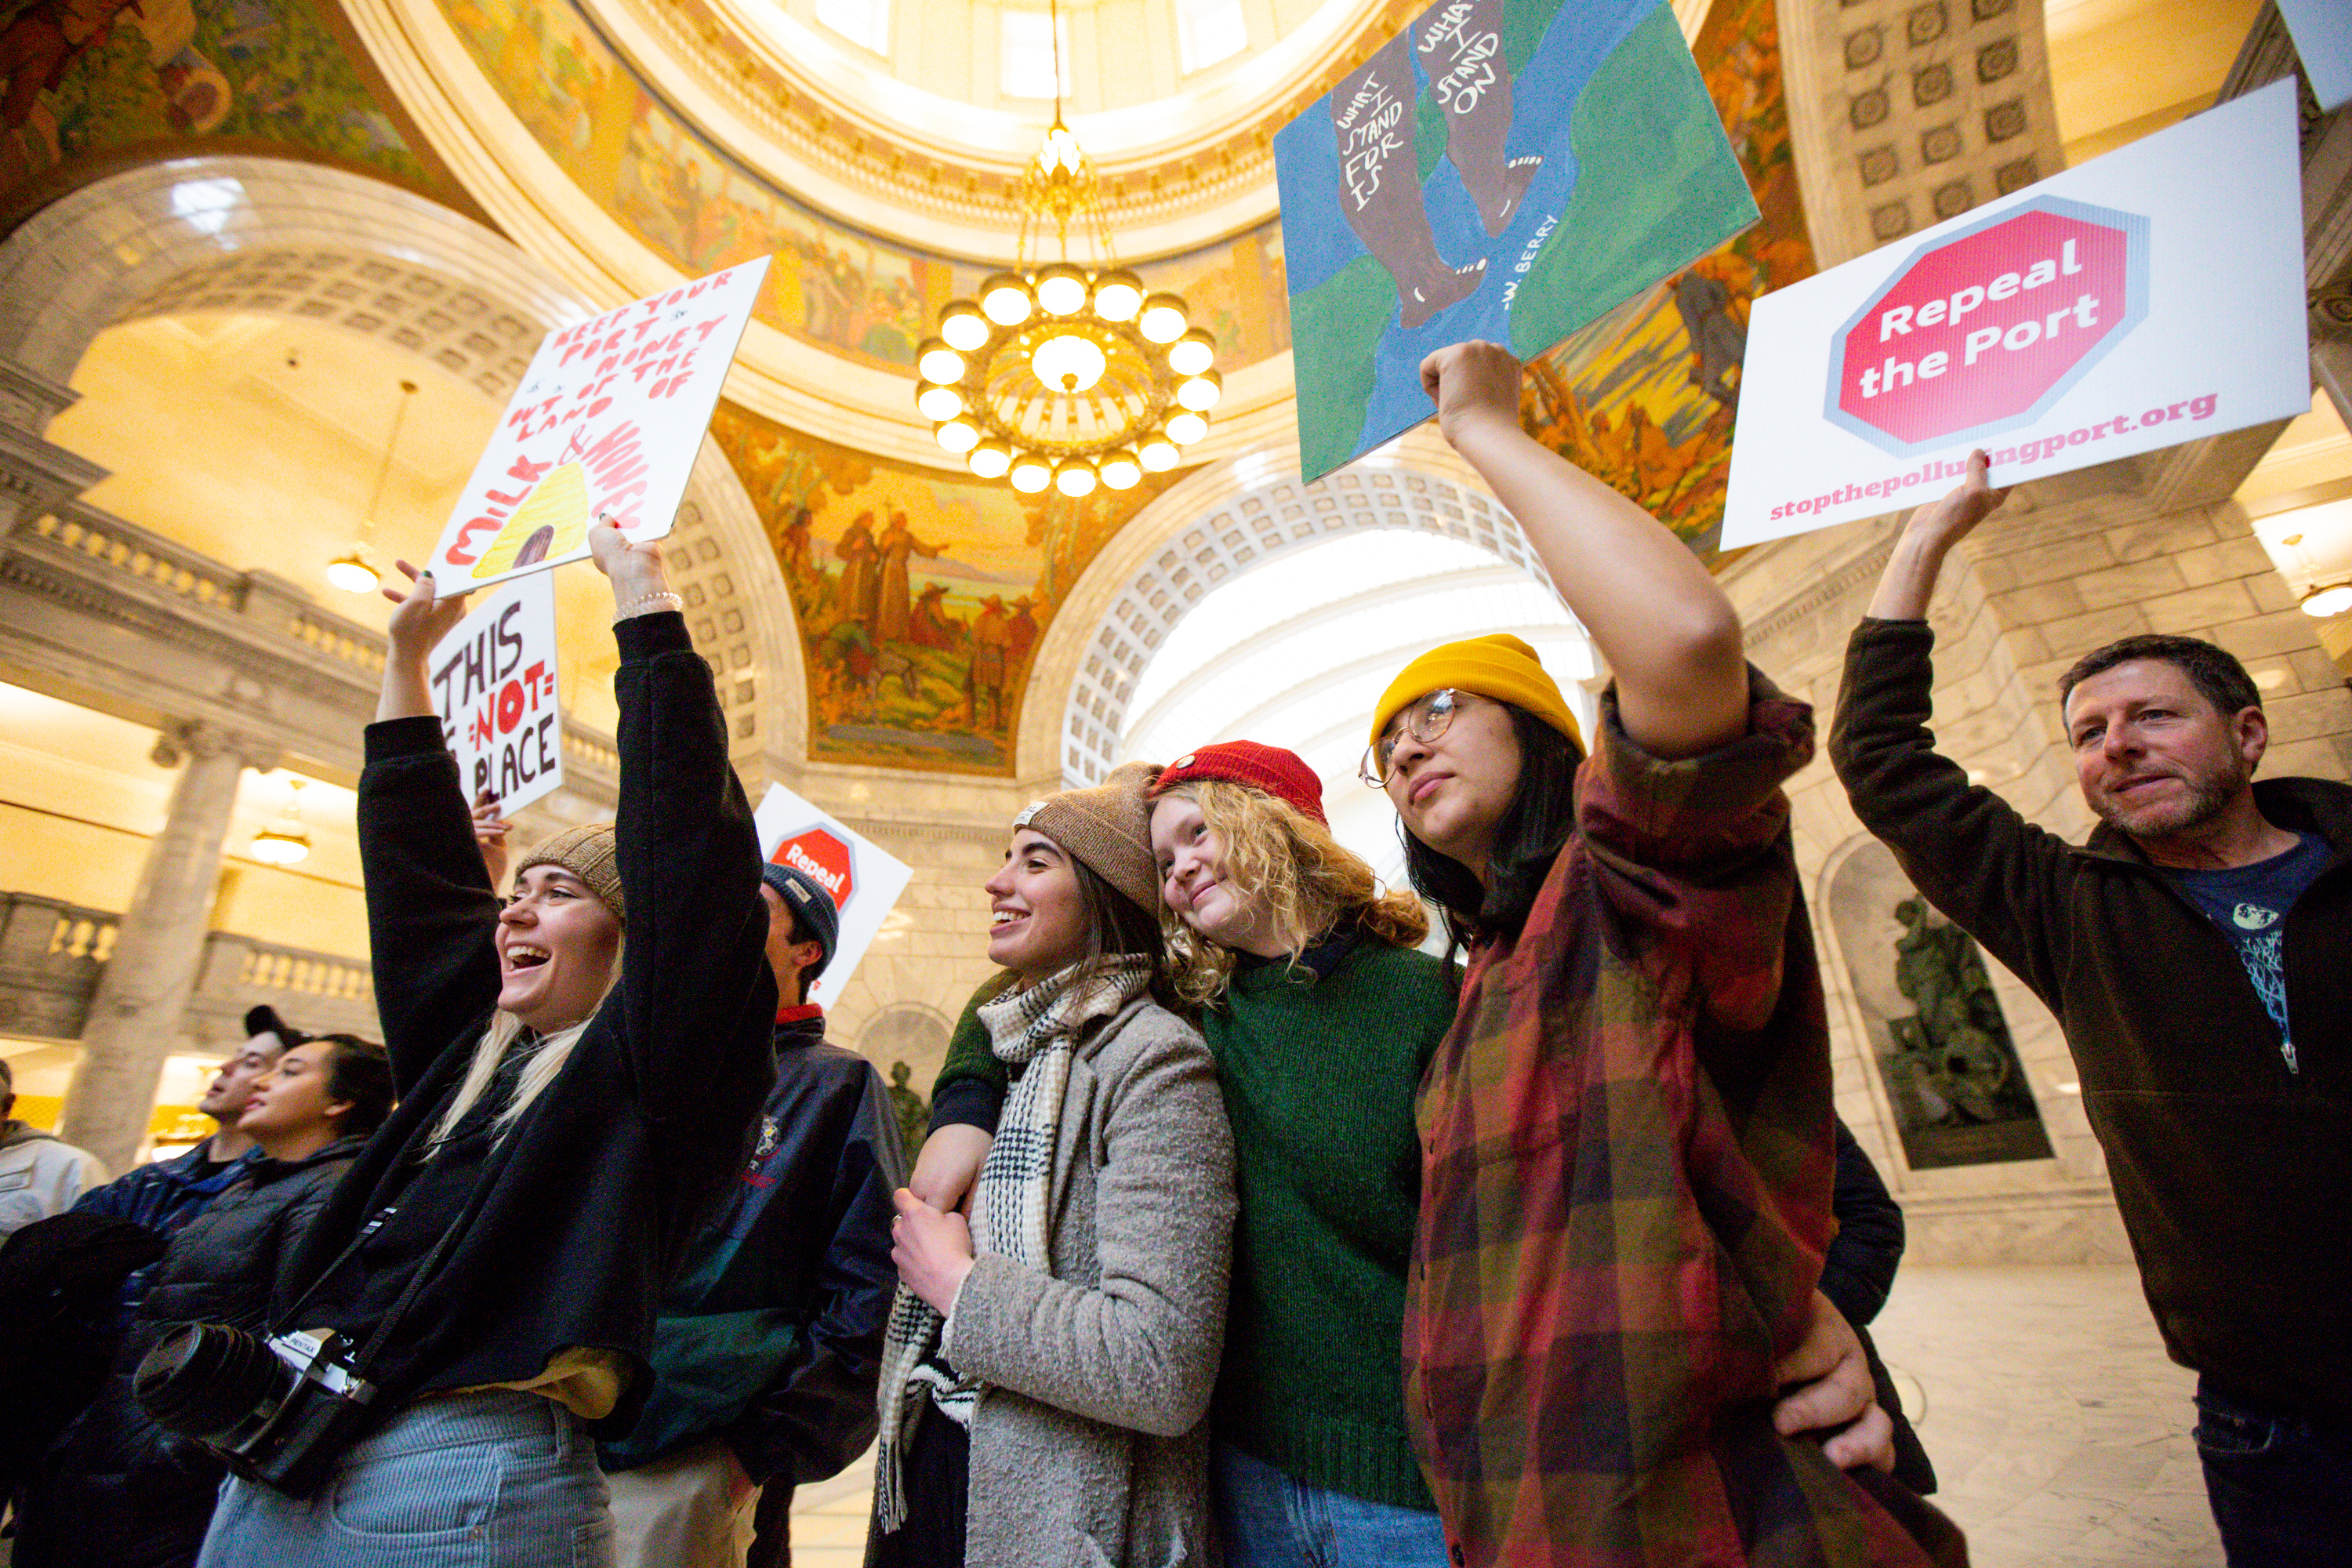 Brigham Young University students Taylor Monney, Kate Foster, Emily Bryson, Tennie Davis and Franchesca Lopez attend a rally held to demonstrate opposition to the Utah Inland Port at the state Capitol in Salt Lake City on Monday, Feb. 3, 2020.